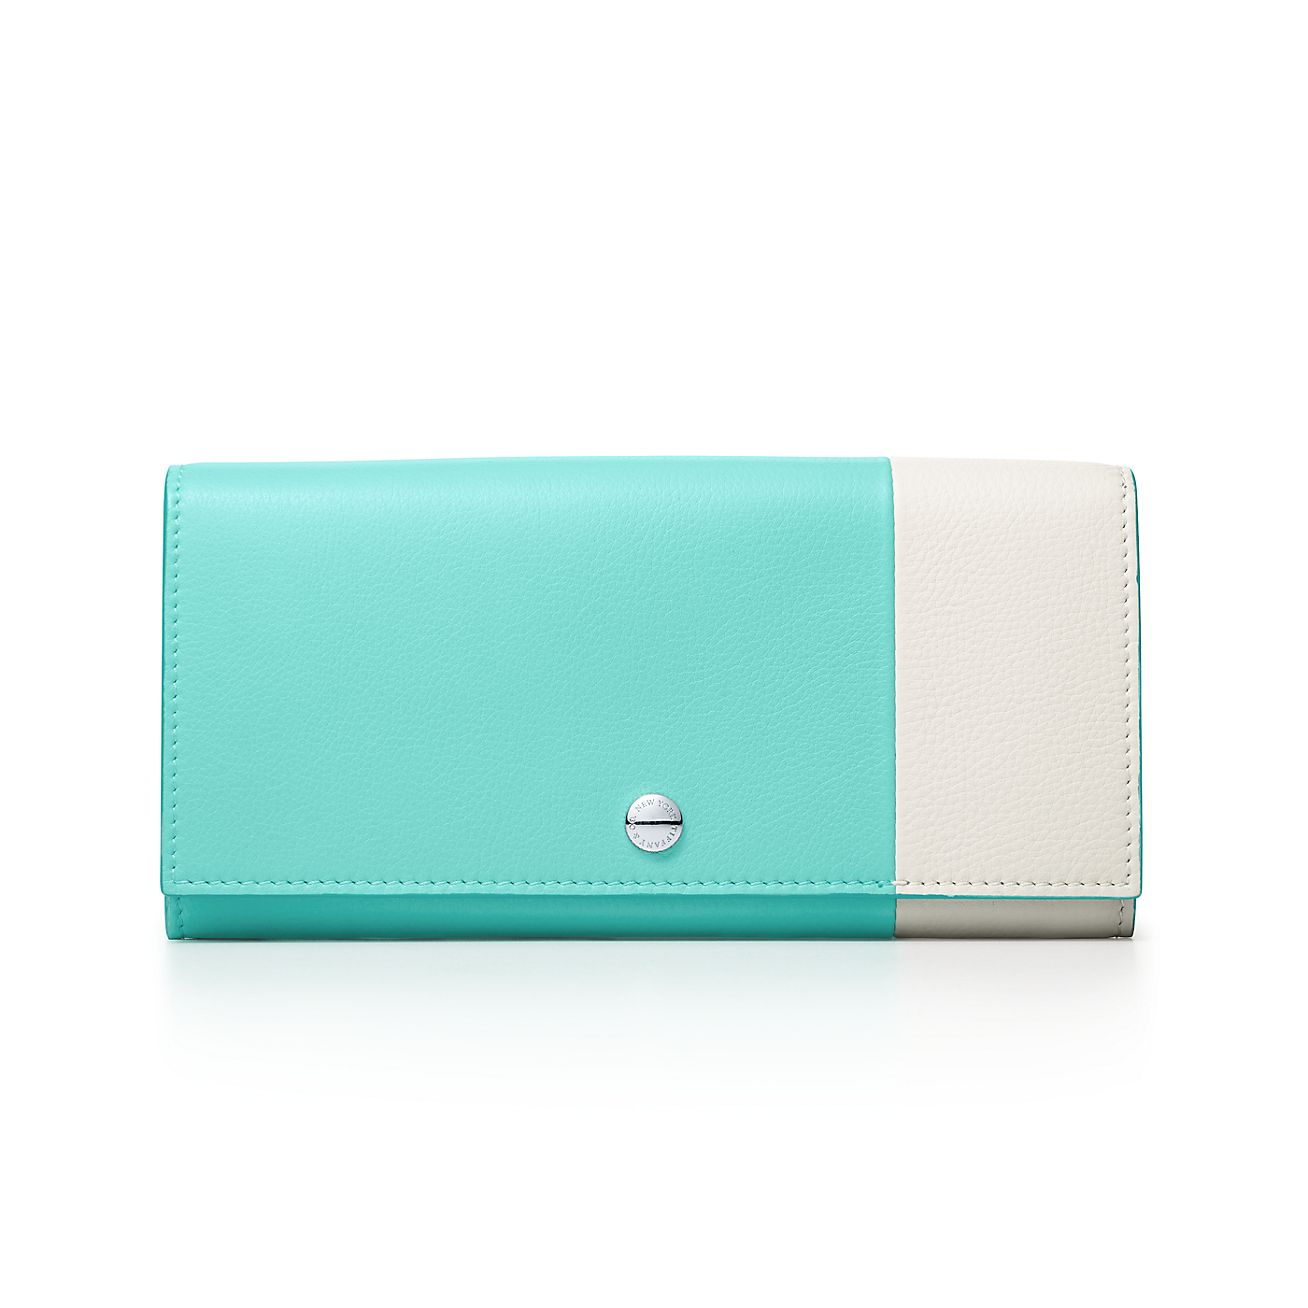 Color Block zip wallet in off-white and Tiffany Blue grain calfskin leather Tiffany & Co.